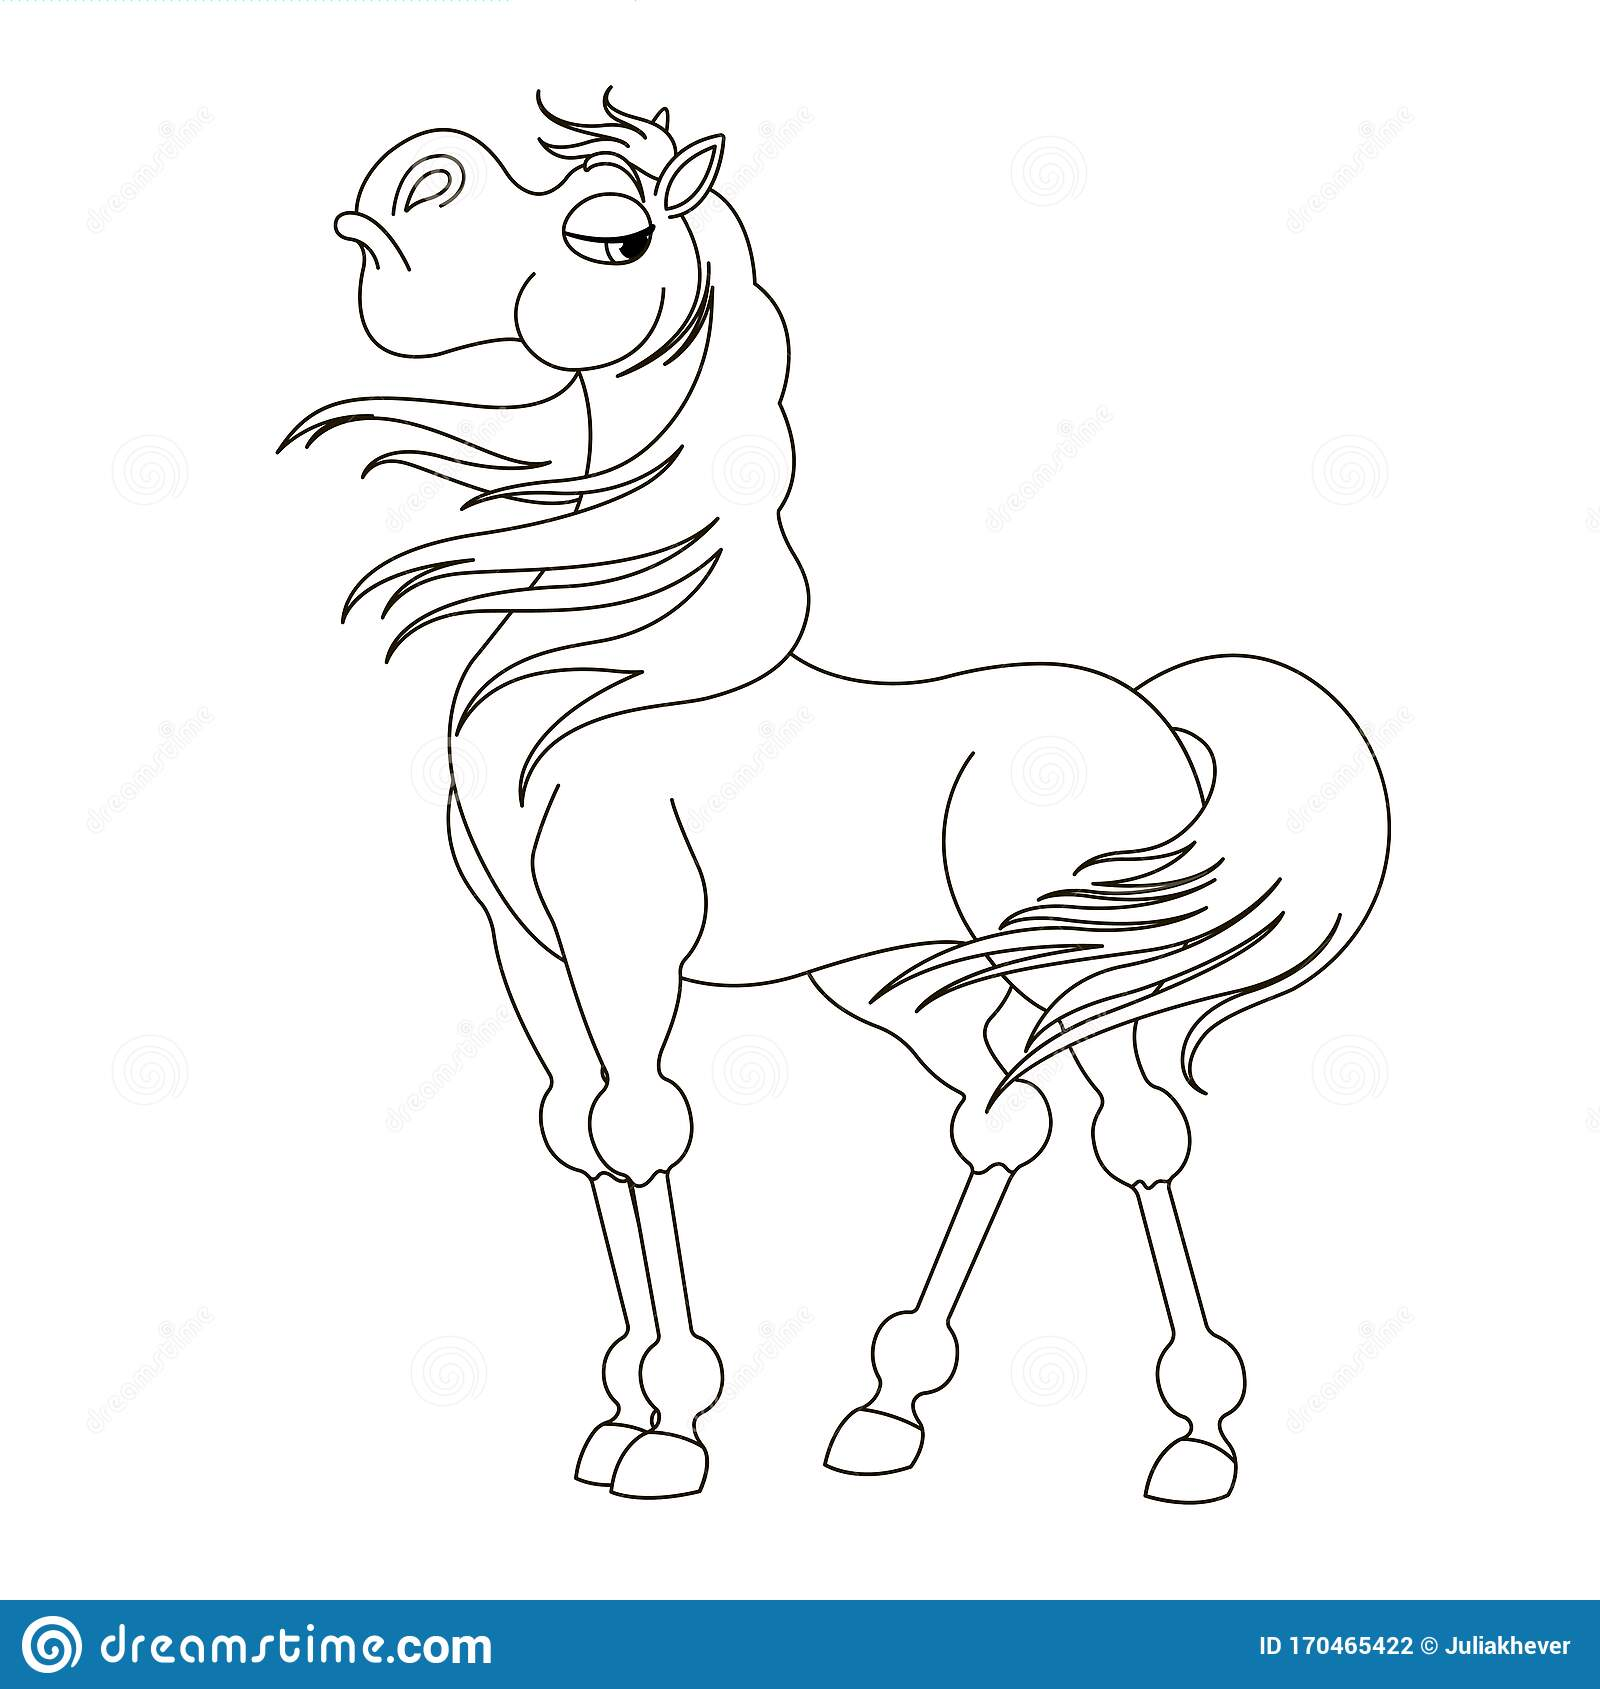 Cute Hand Drawn Proud Horse Drawing Contour For Coloring Stock Vector Illustration Of Graphics Coloringpage 170465422